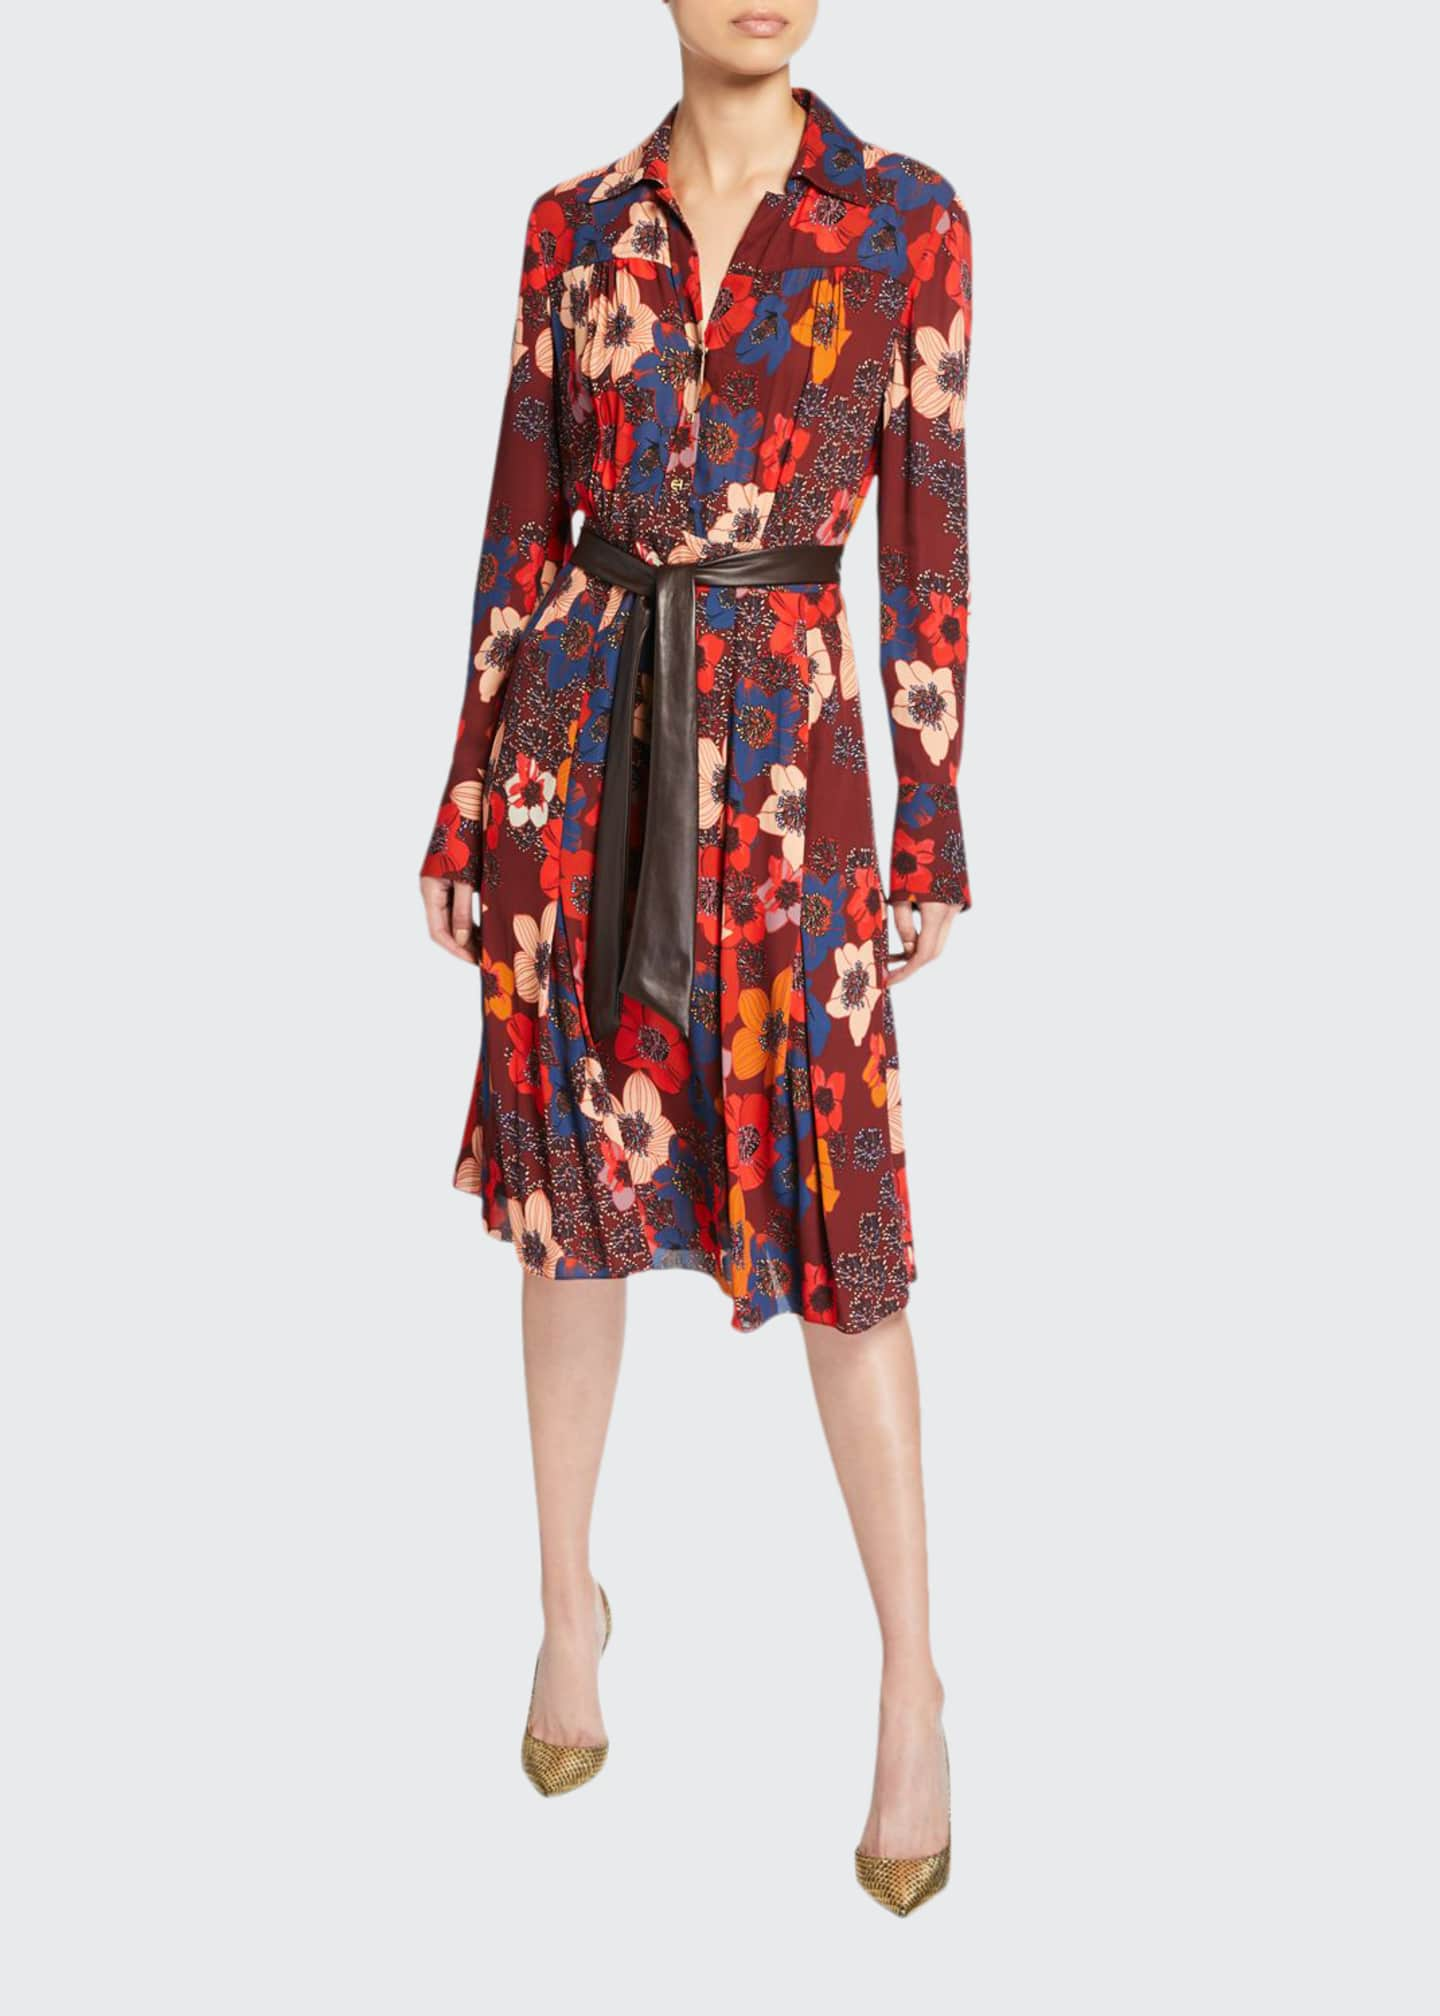 Elie Tahari Brinx Floral Long-Sleeve Dress w/ Faux